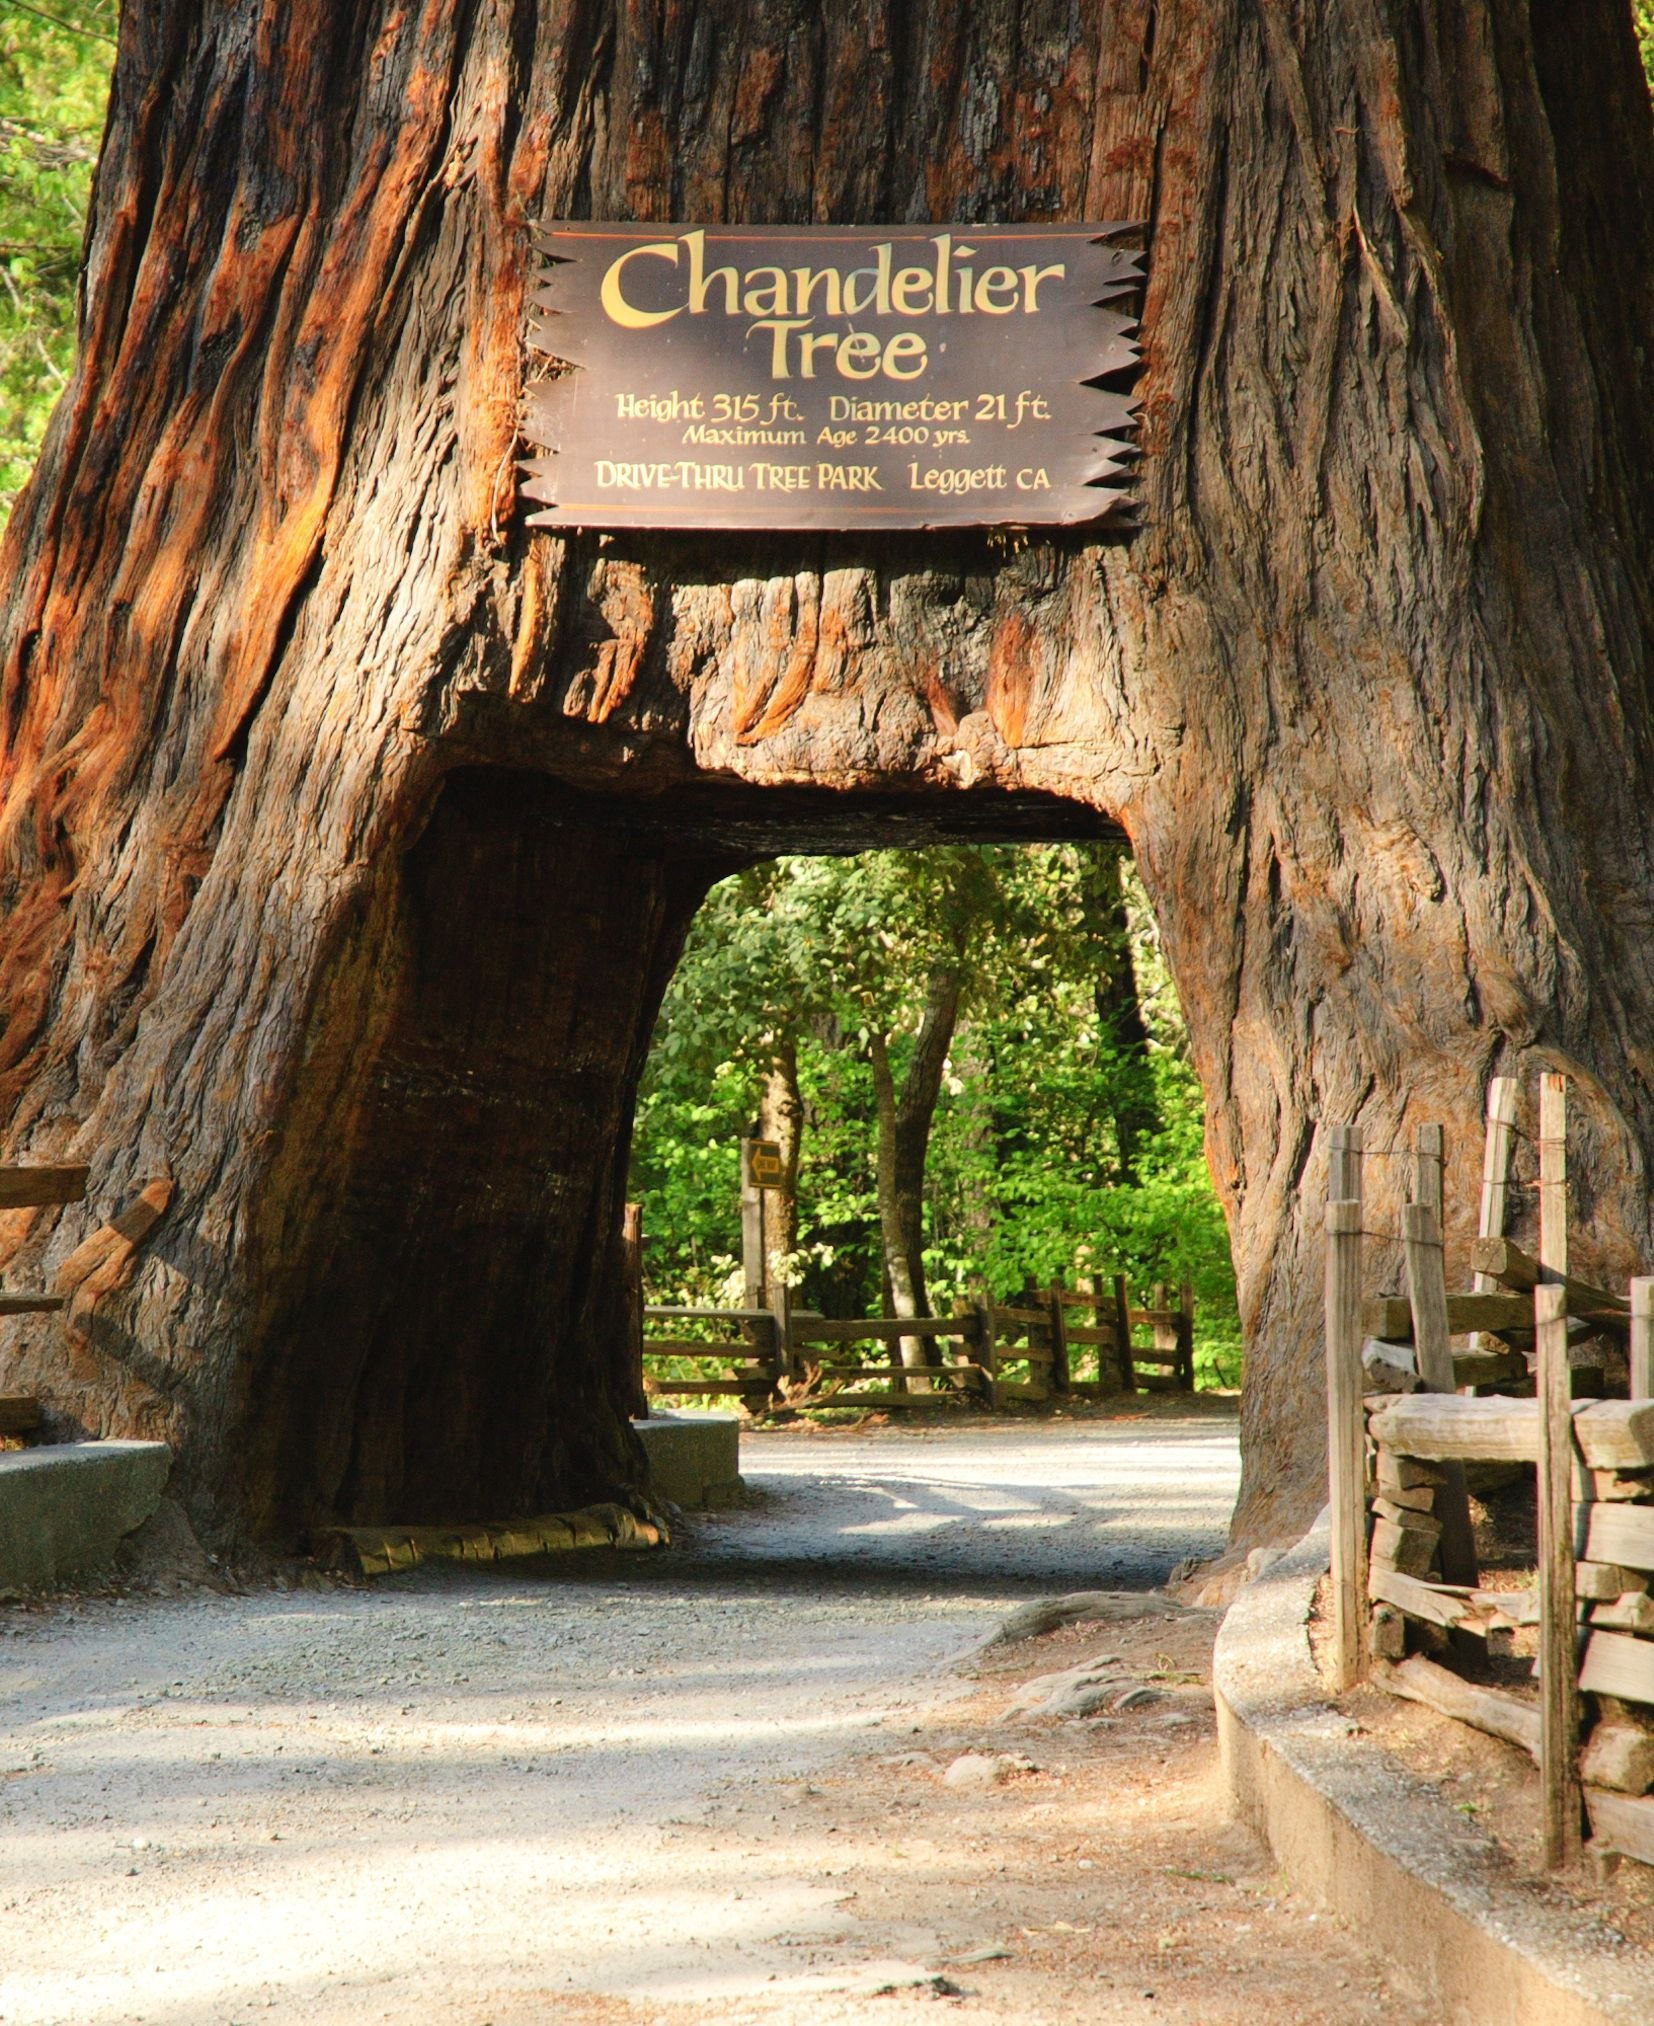 List: Drive through a Redwood Tree! Wish I saw this last week when I was in San Francisco!